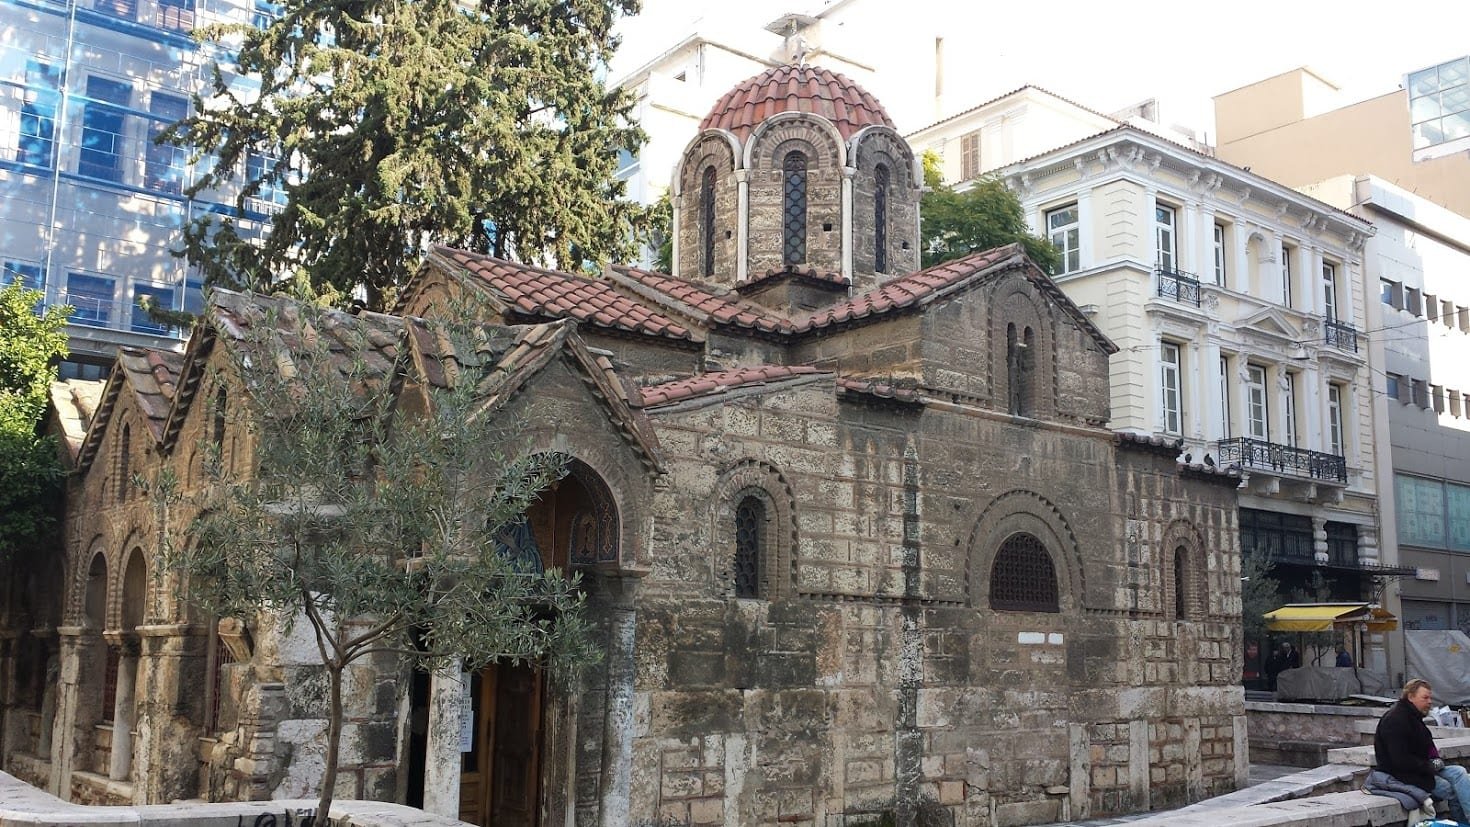 The Panagia Kapnikarea church is one of the most famous Athens Greece landmarks